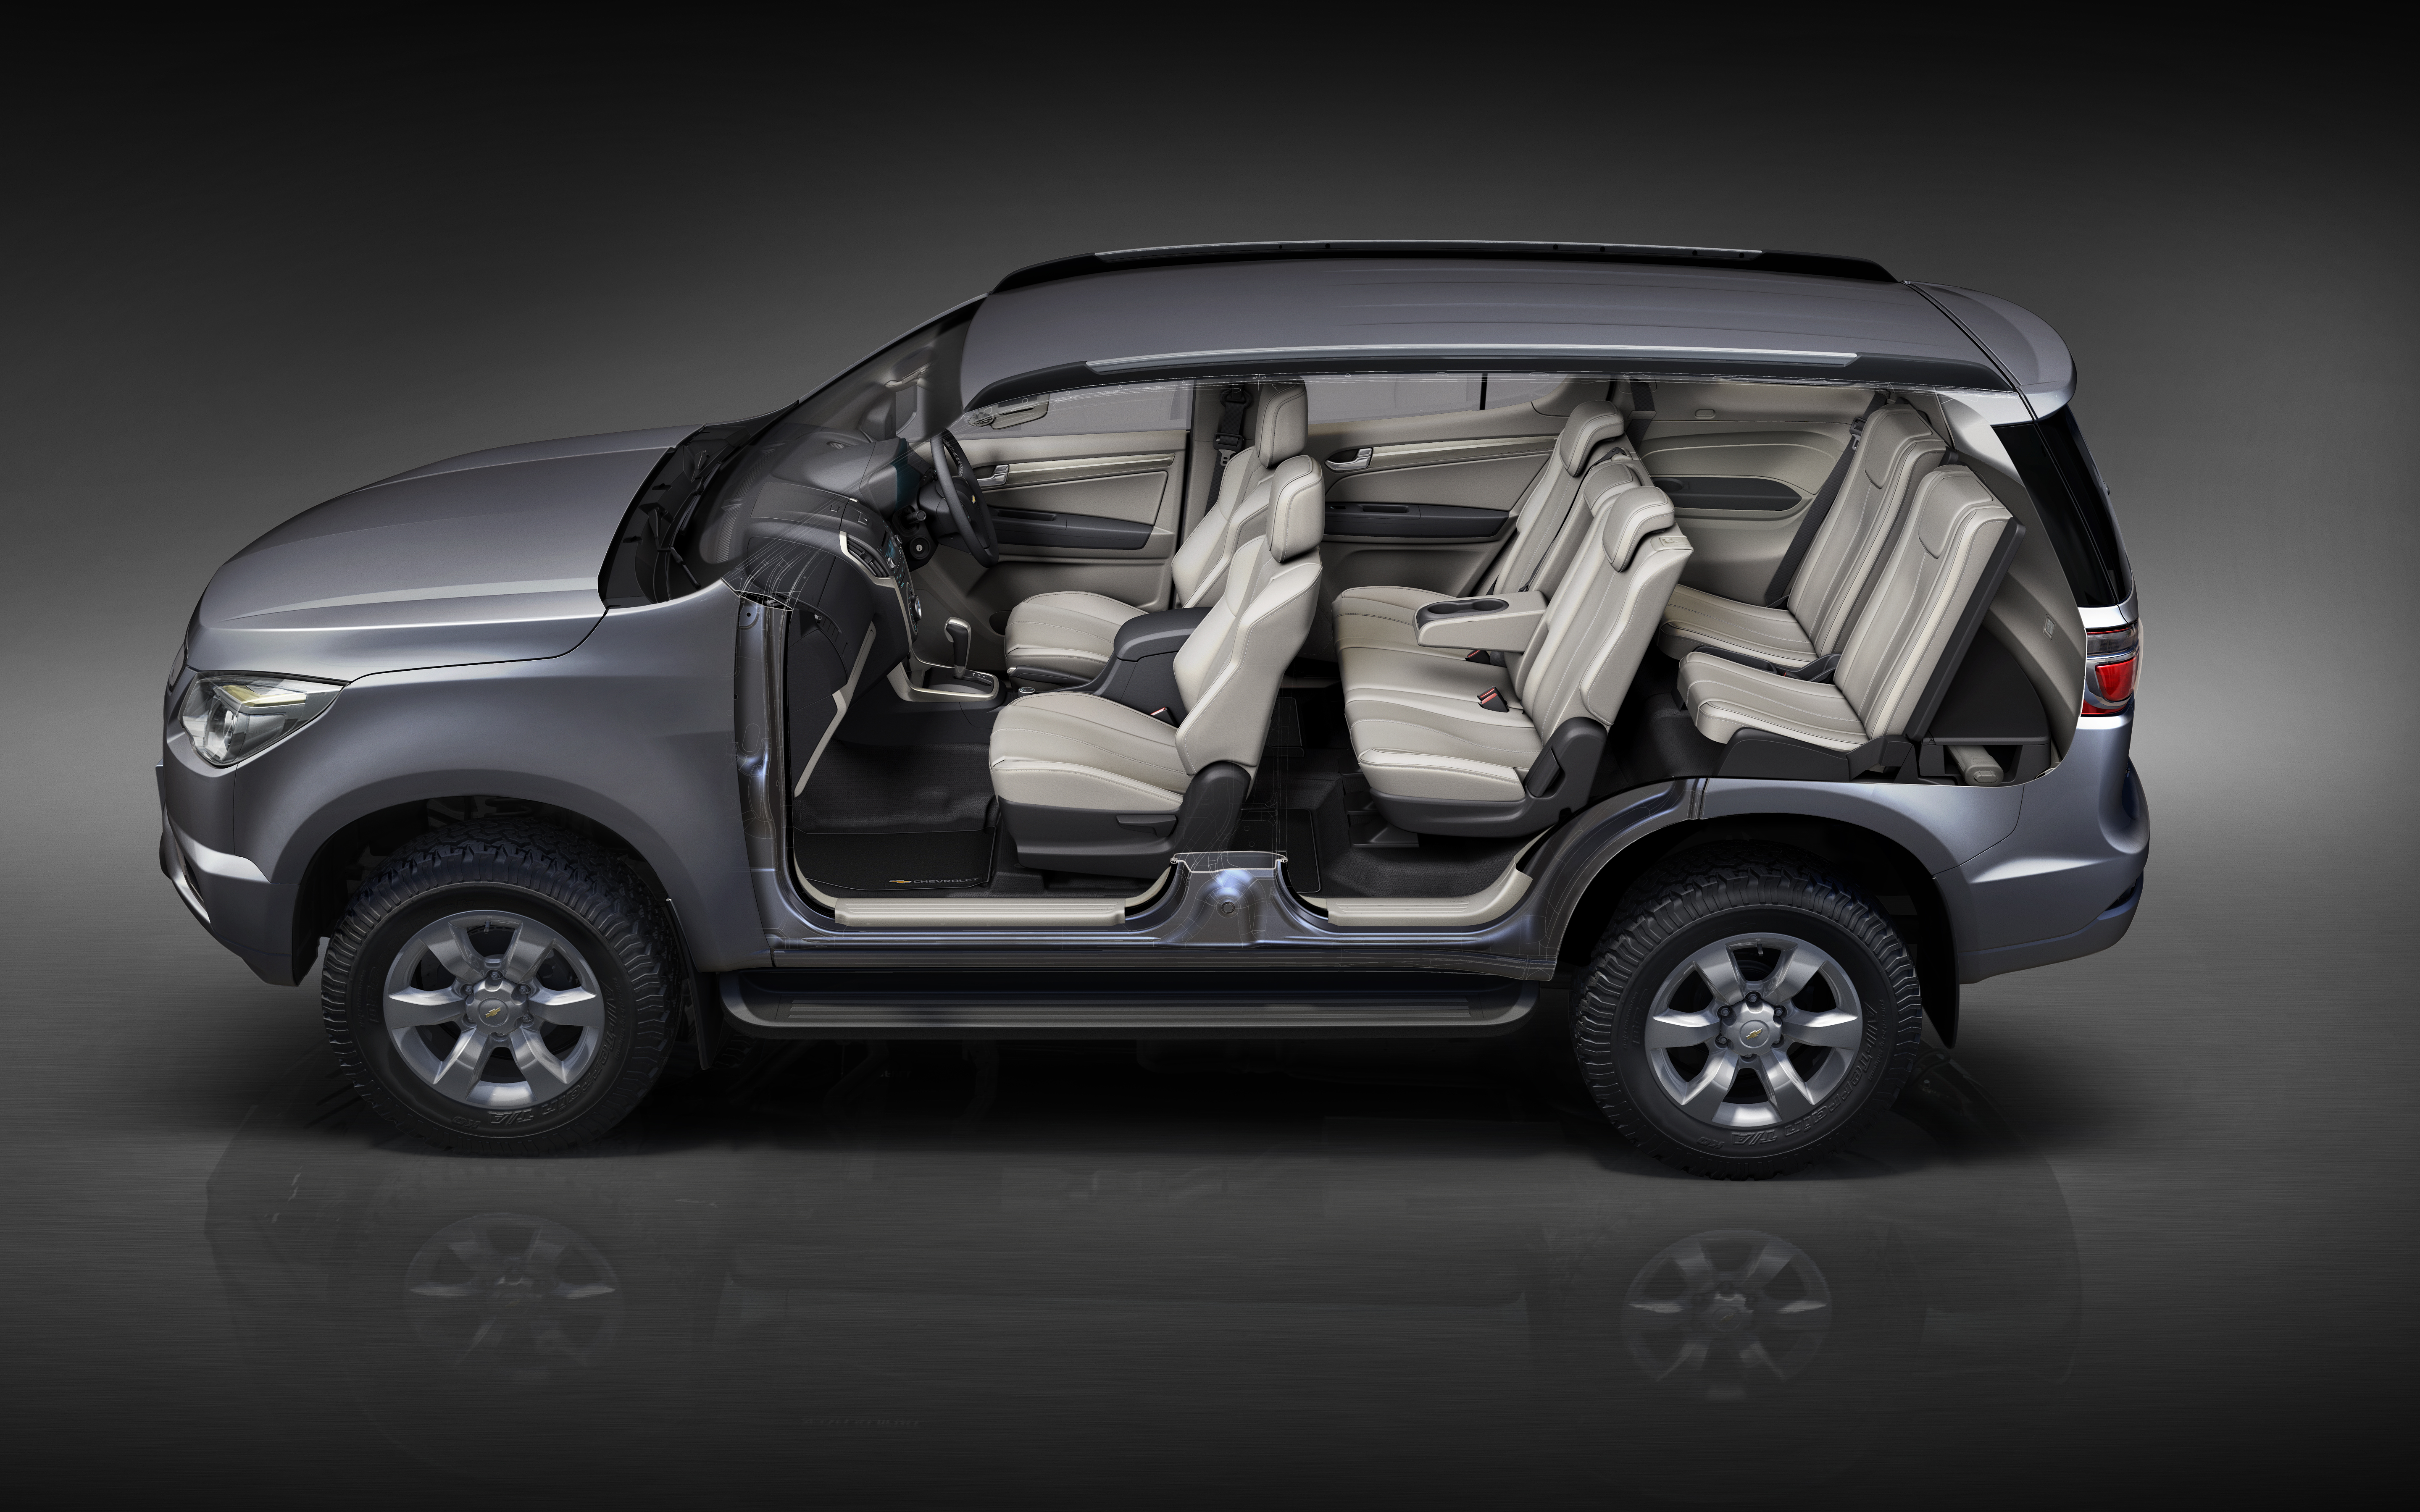 2017 Chevrolet Trailblazer Suv The Photo Above